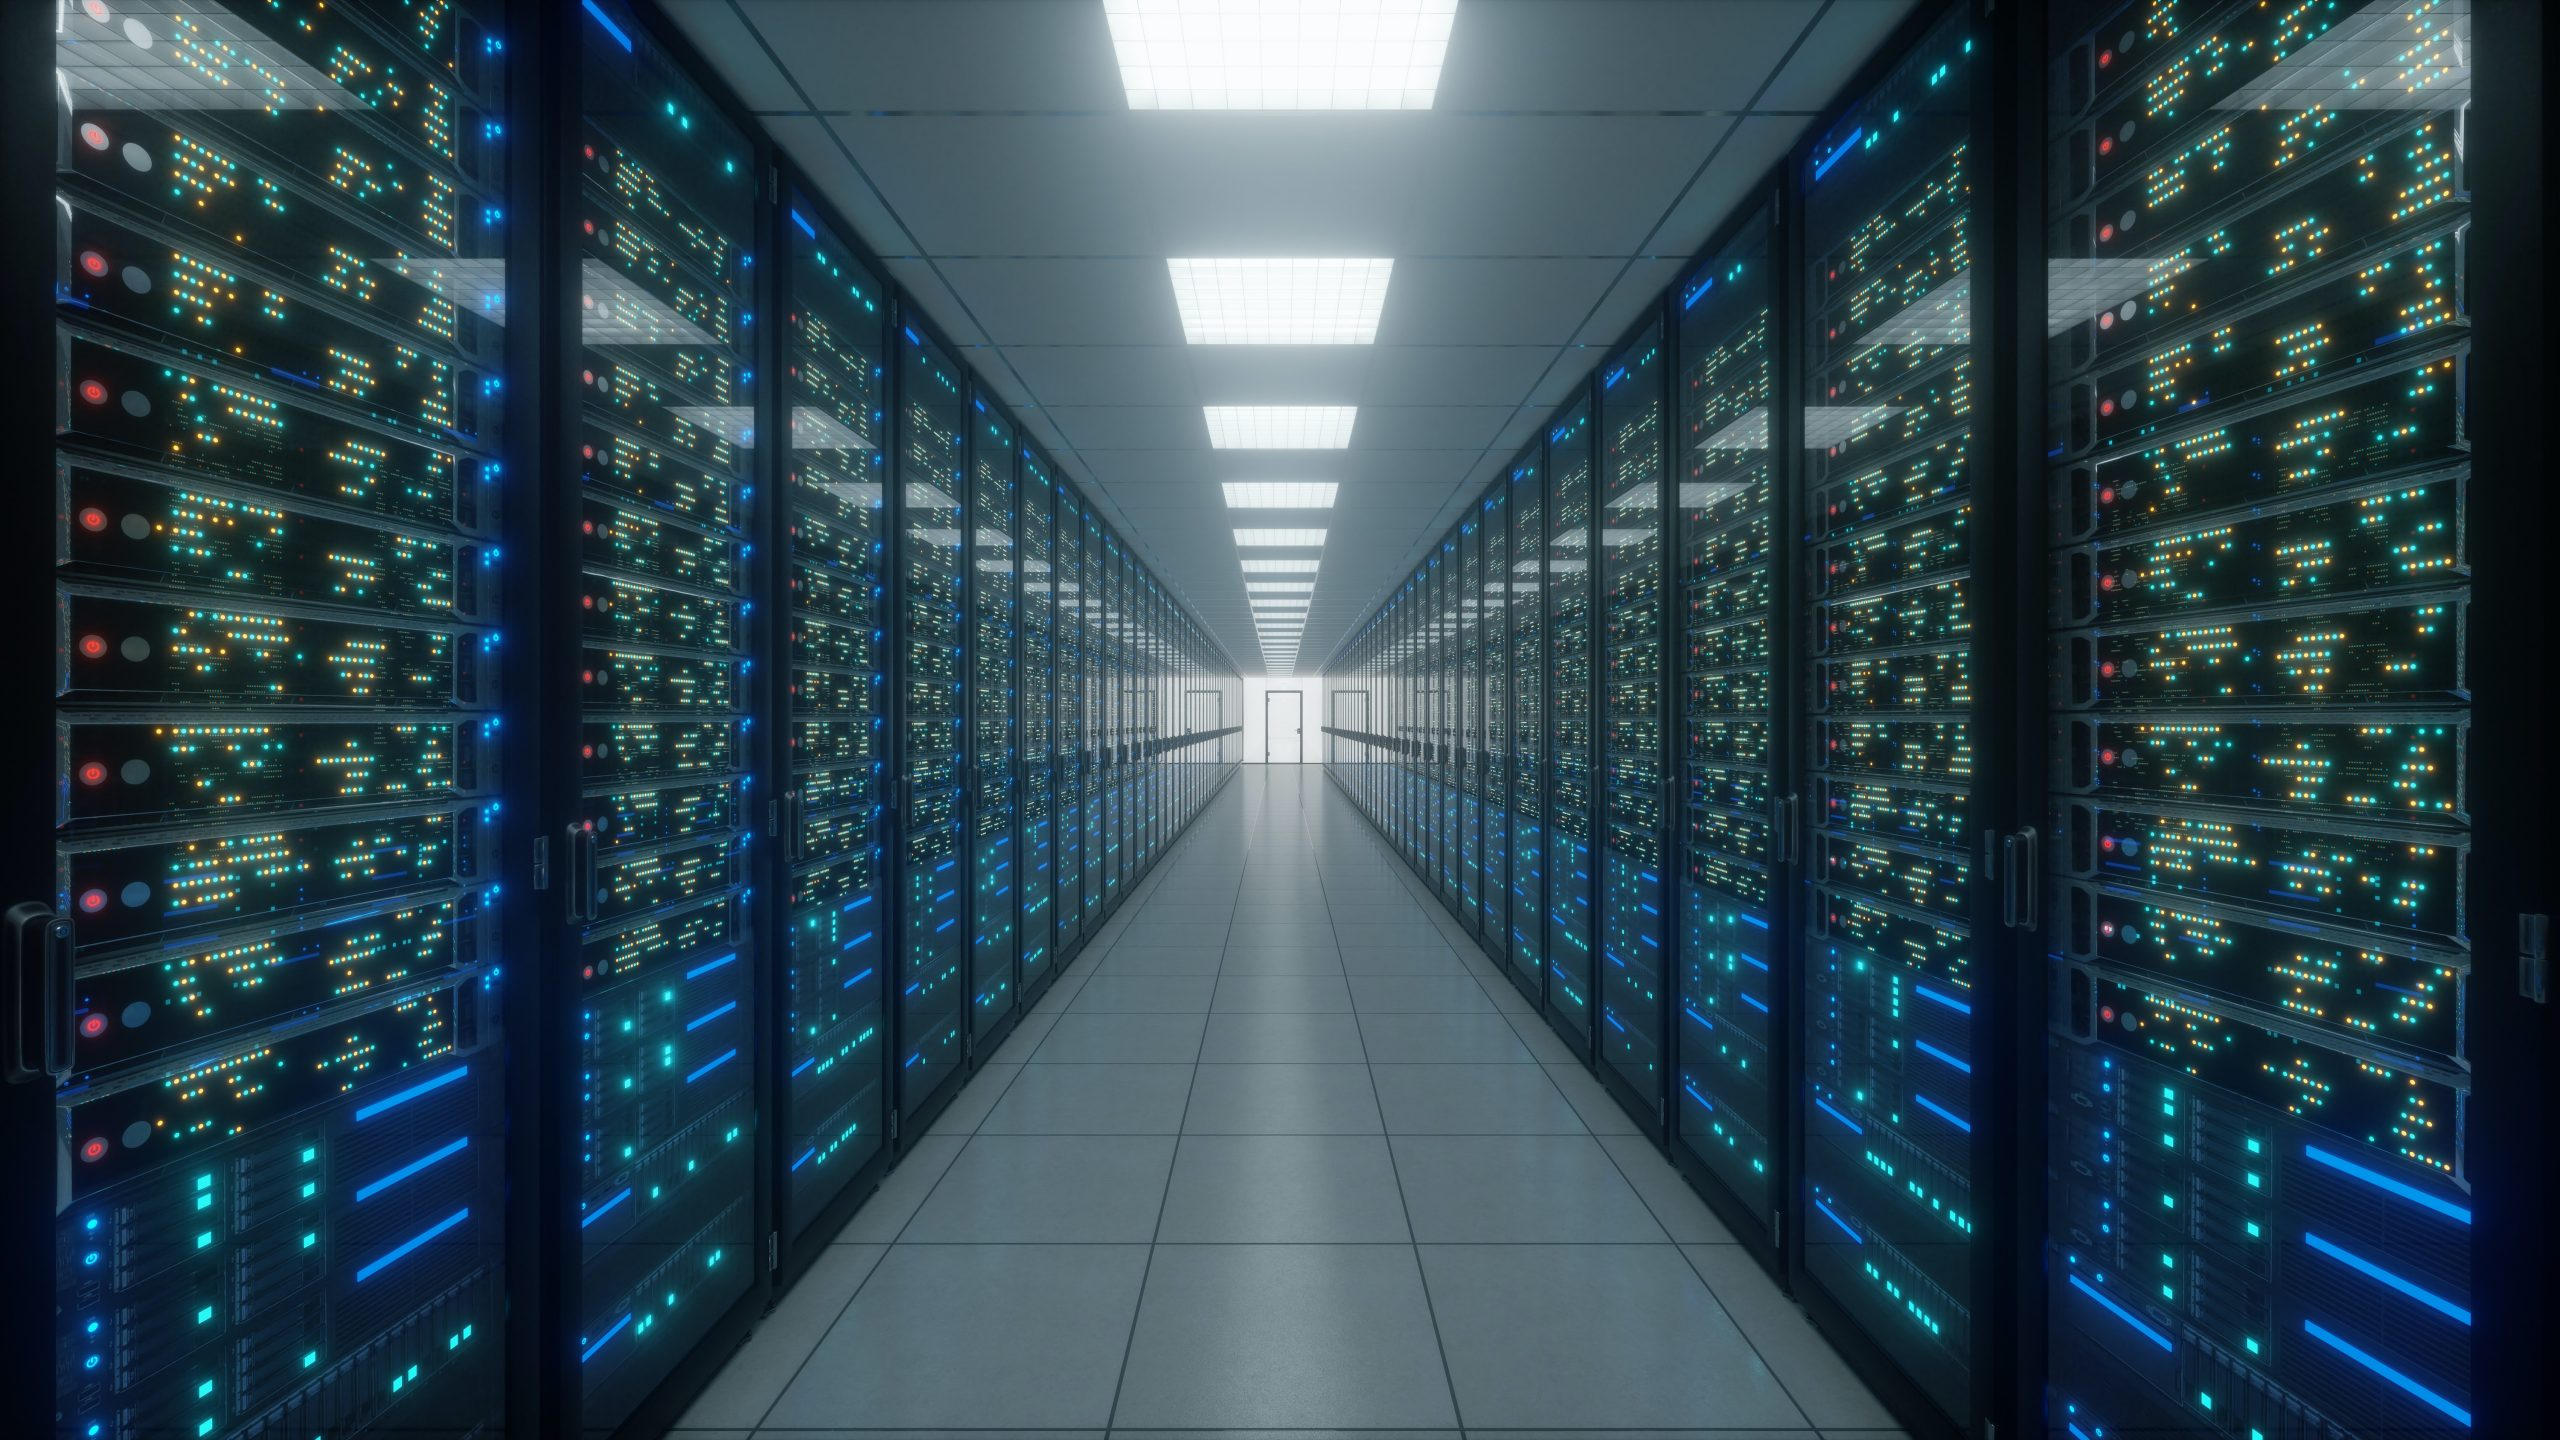 A long corridor with rows of digital storage devices either side.